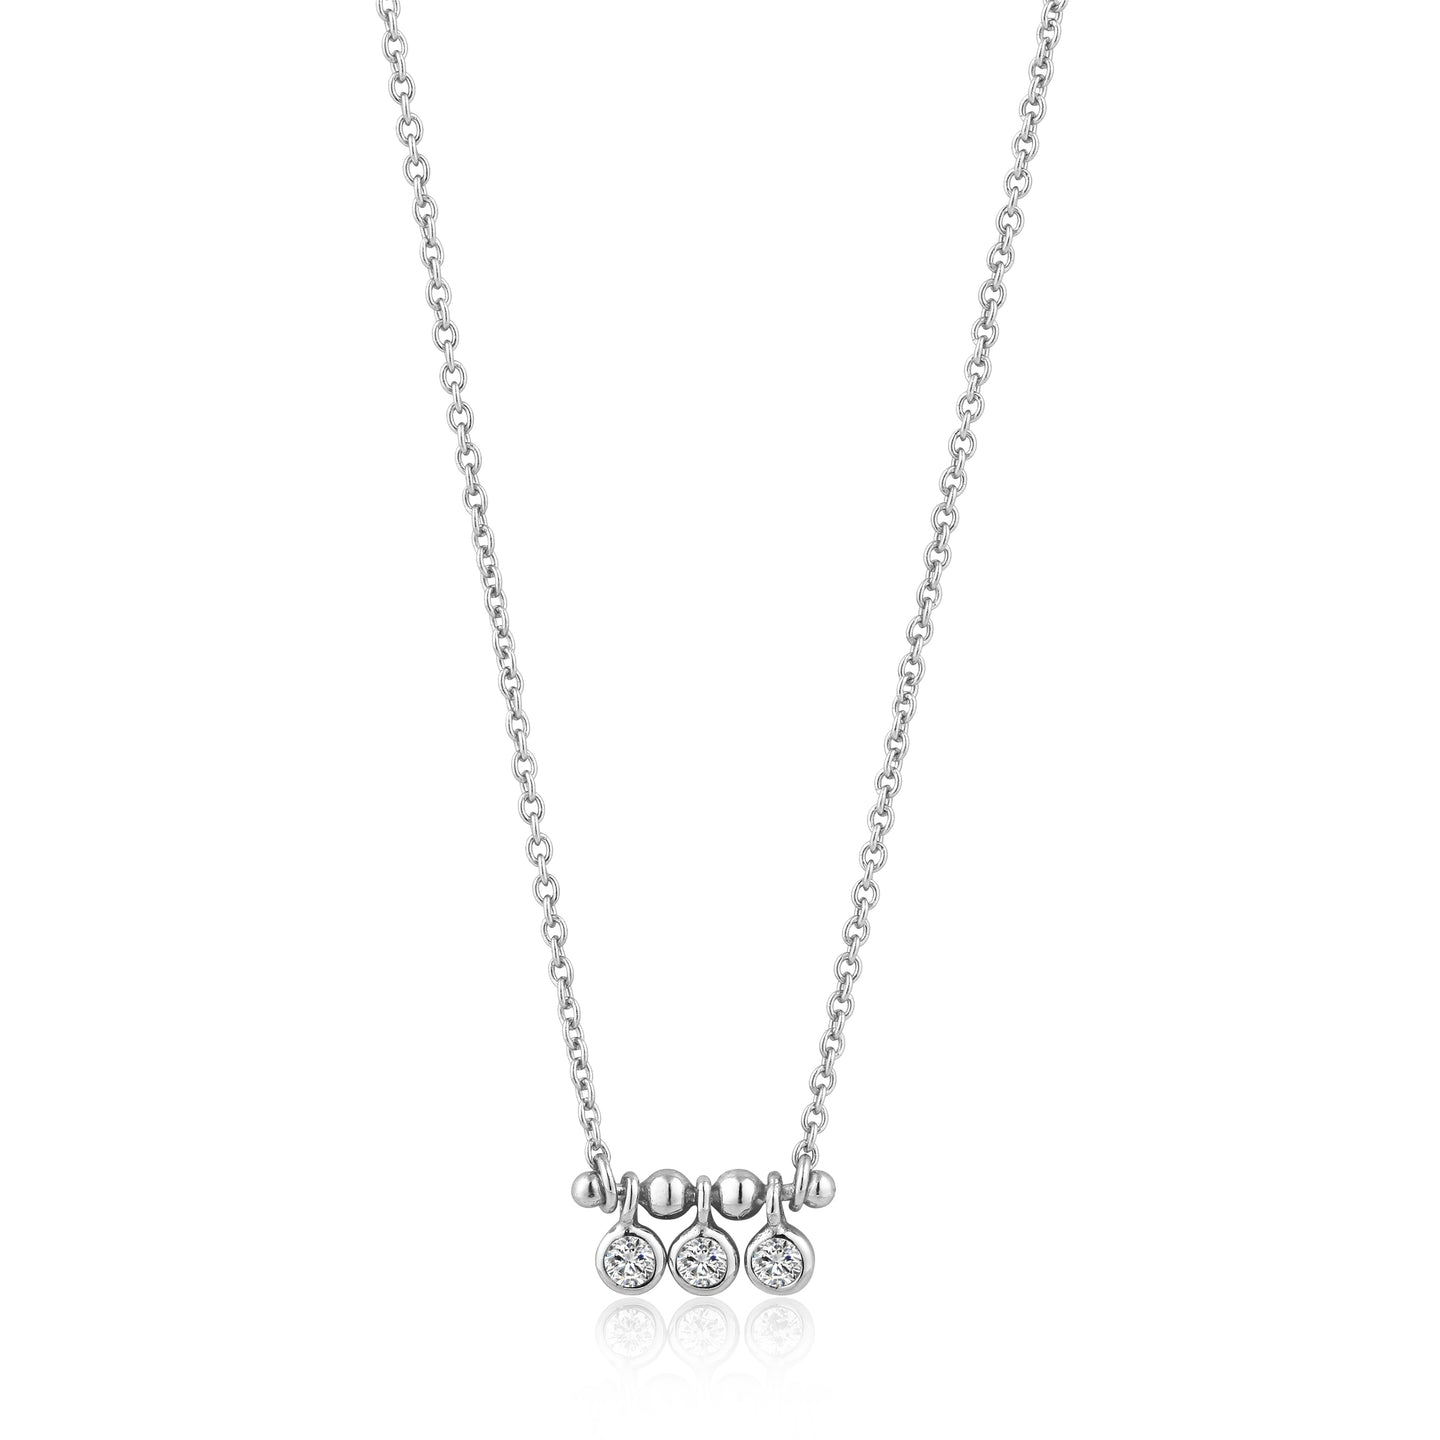 Silver Shimmer Triple Stud Necklace N003-03H